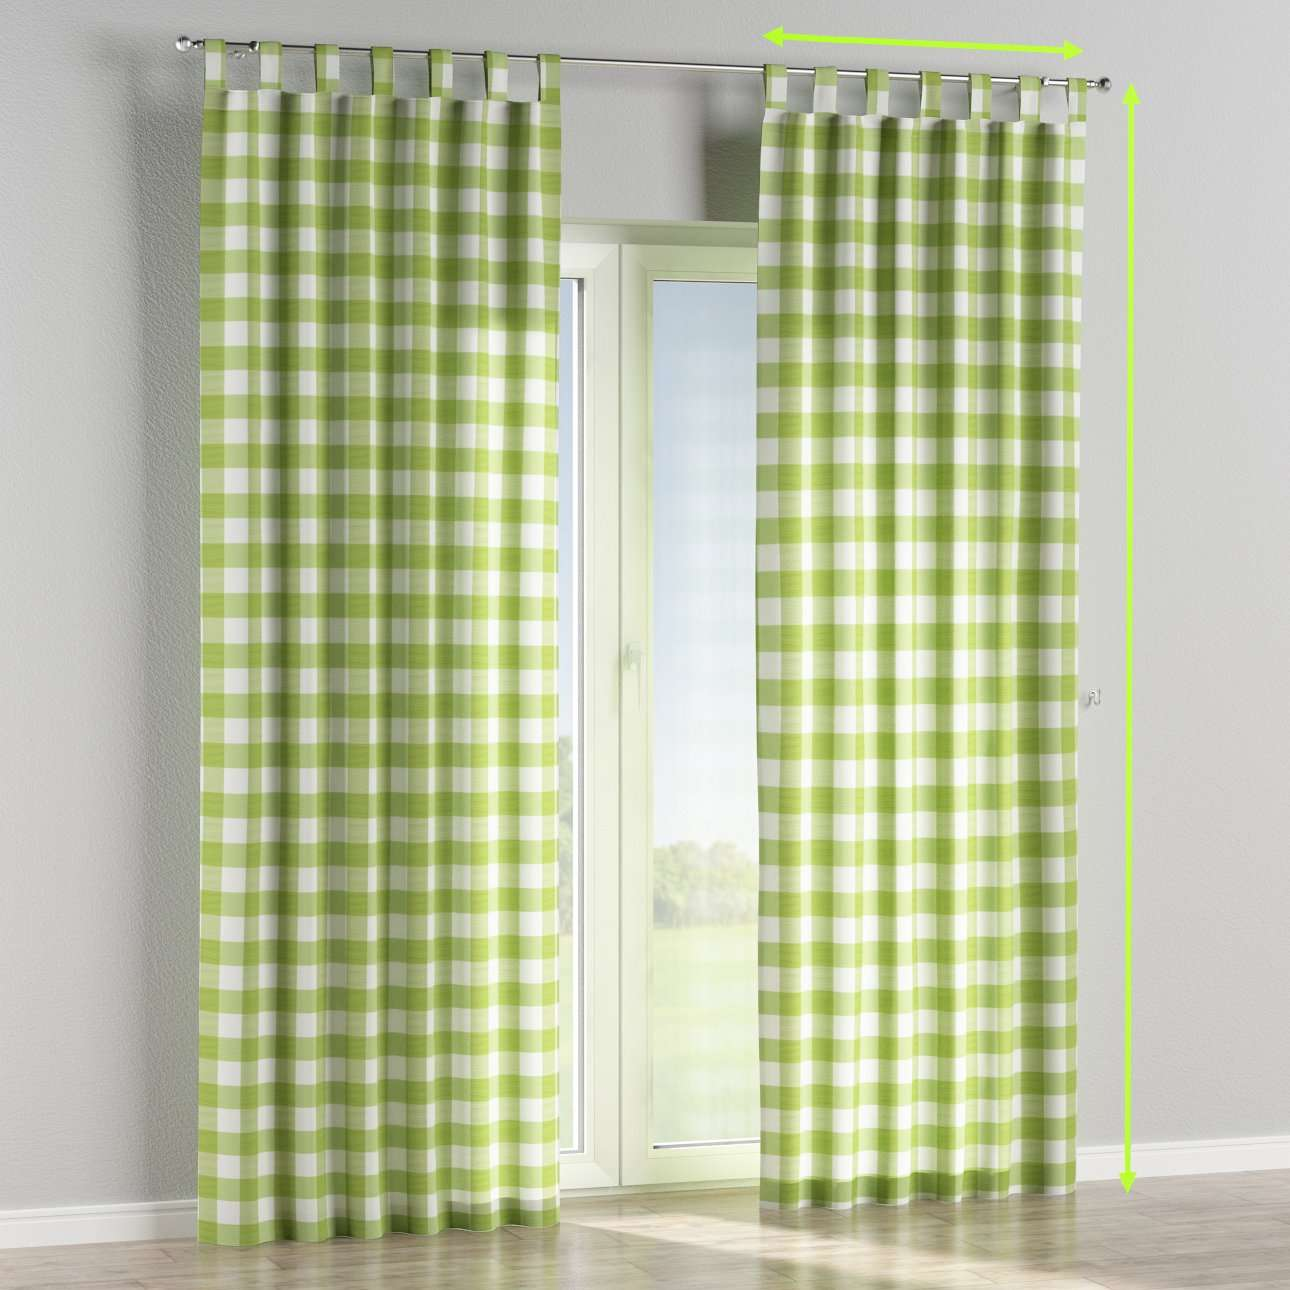 Tab top lined curtains in collection Quadro, fabric: 136-36